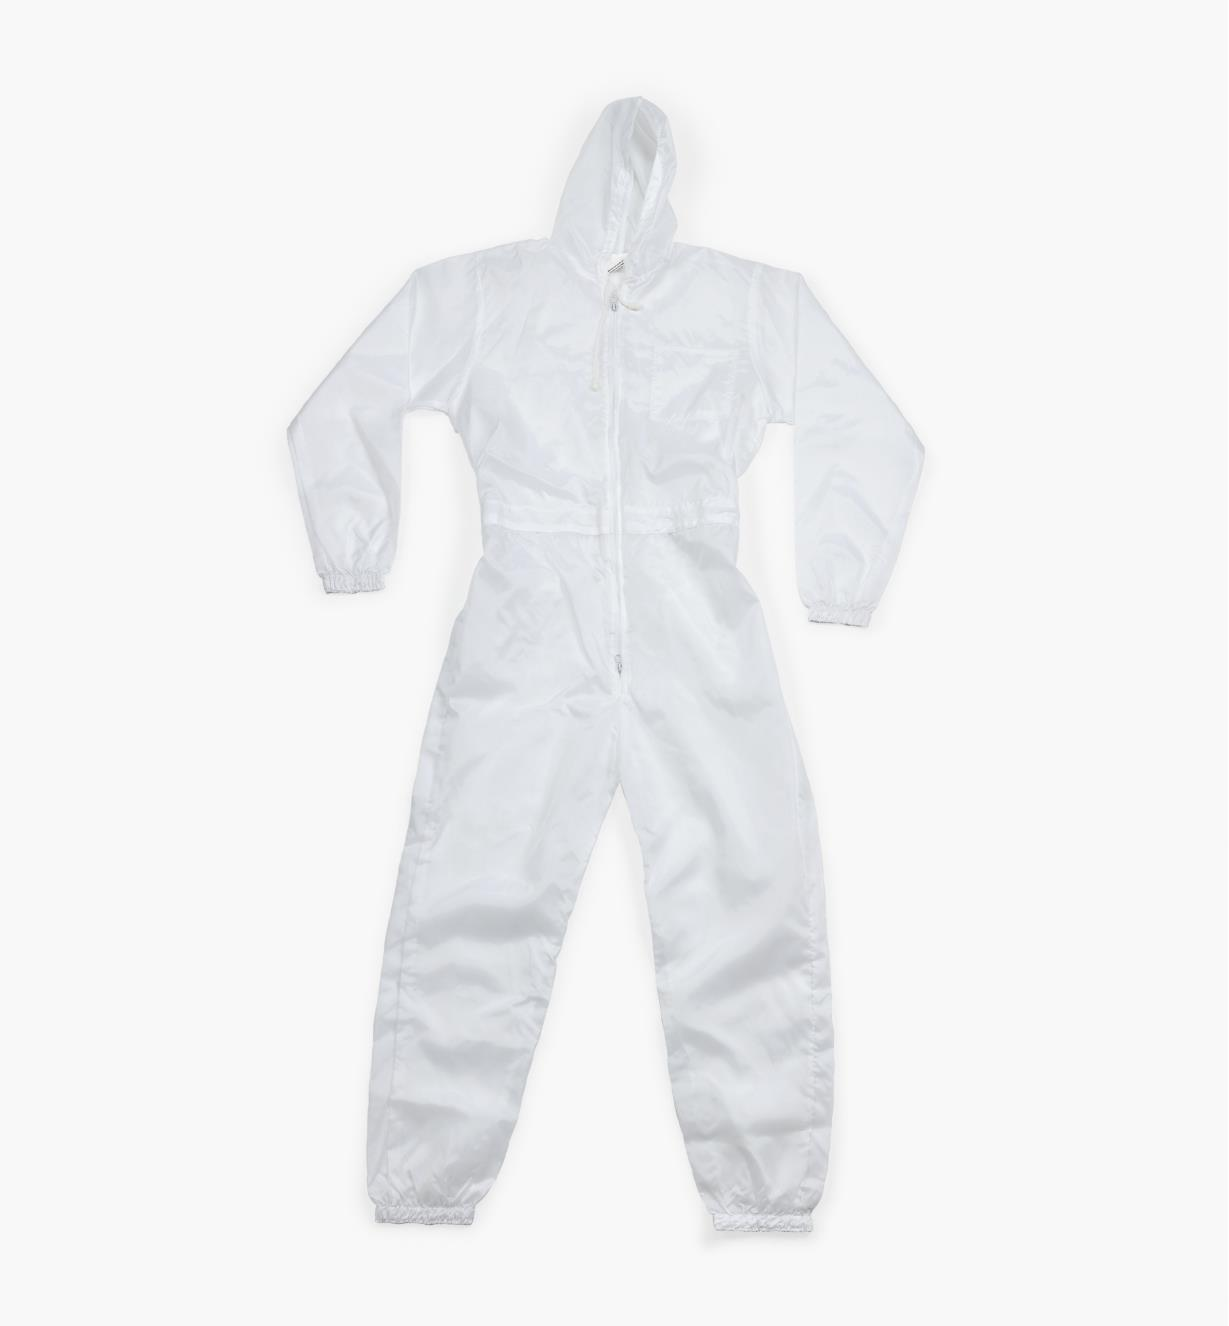 56Z9993 - XLarge Coveralls (46-48)